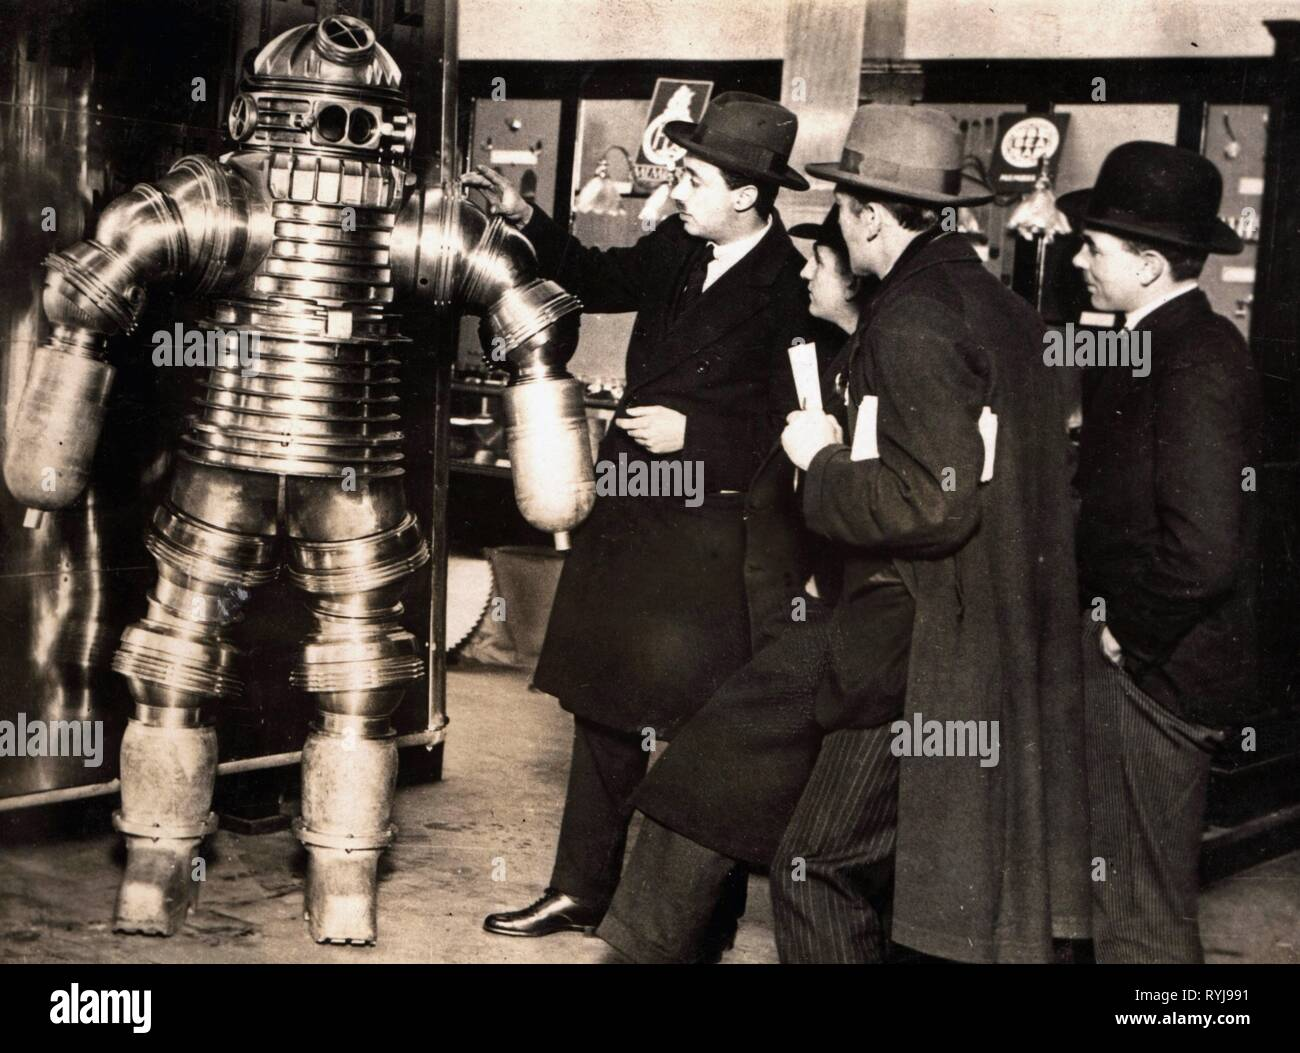 diving, atmospheric diving suit, presentation by the constructor Joseph Salim Peress, Navigation Exhibition, Olympia, London, 1925, Additional-Rights-Clearance-Info-Not-Available - Stock Image